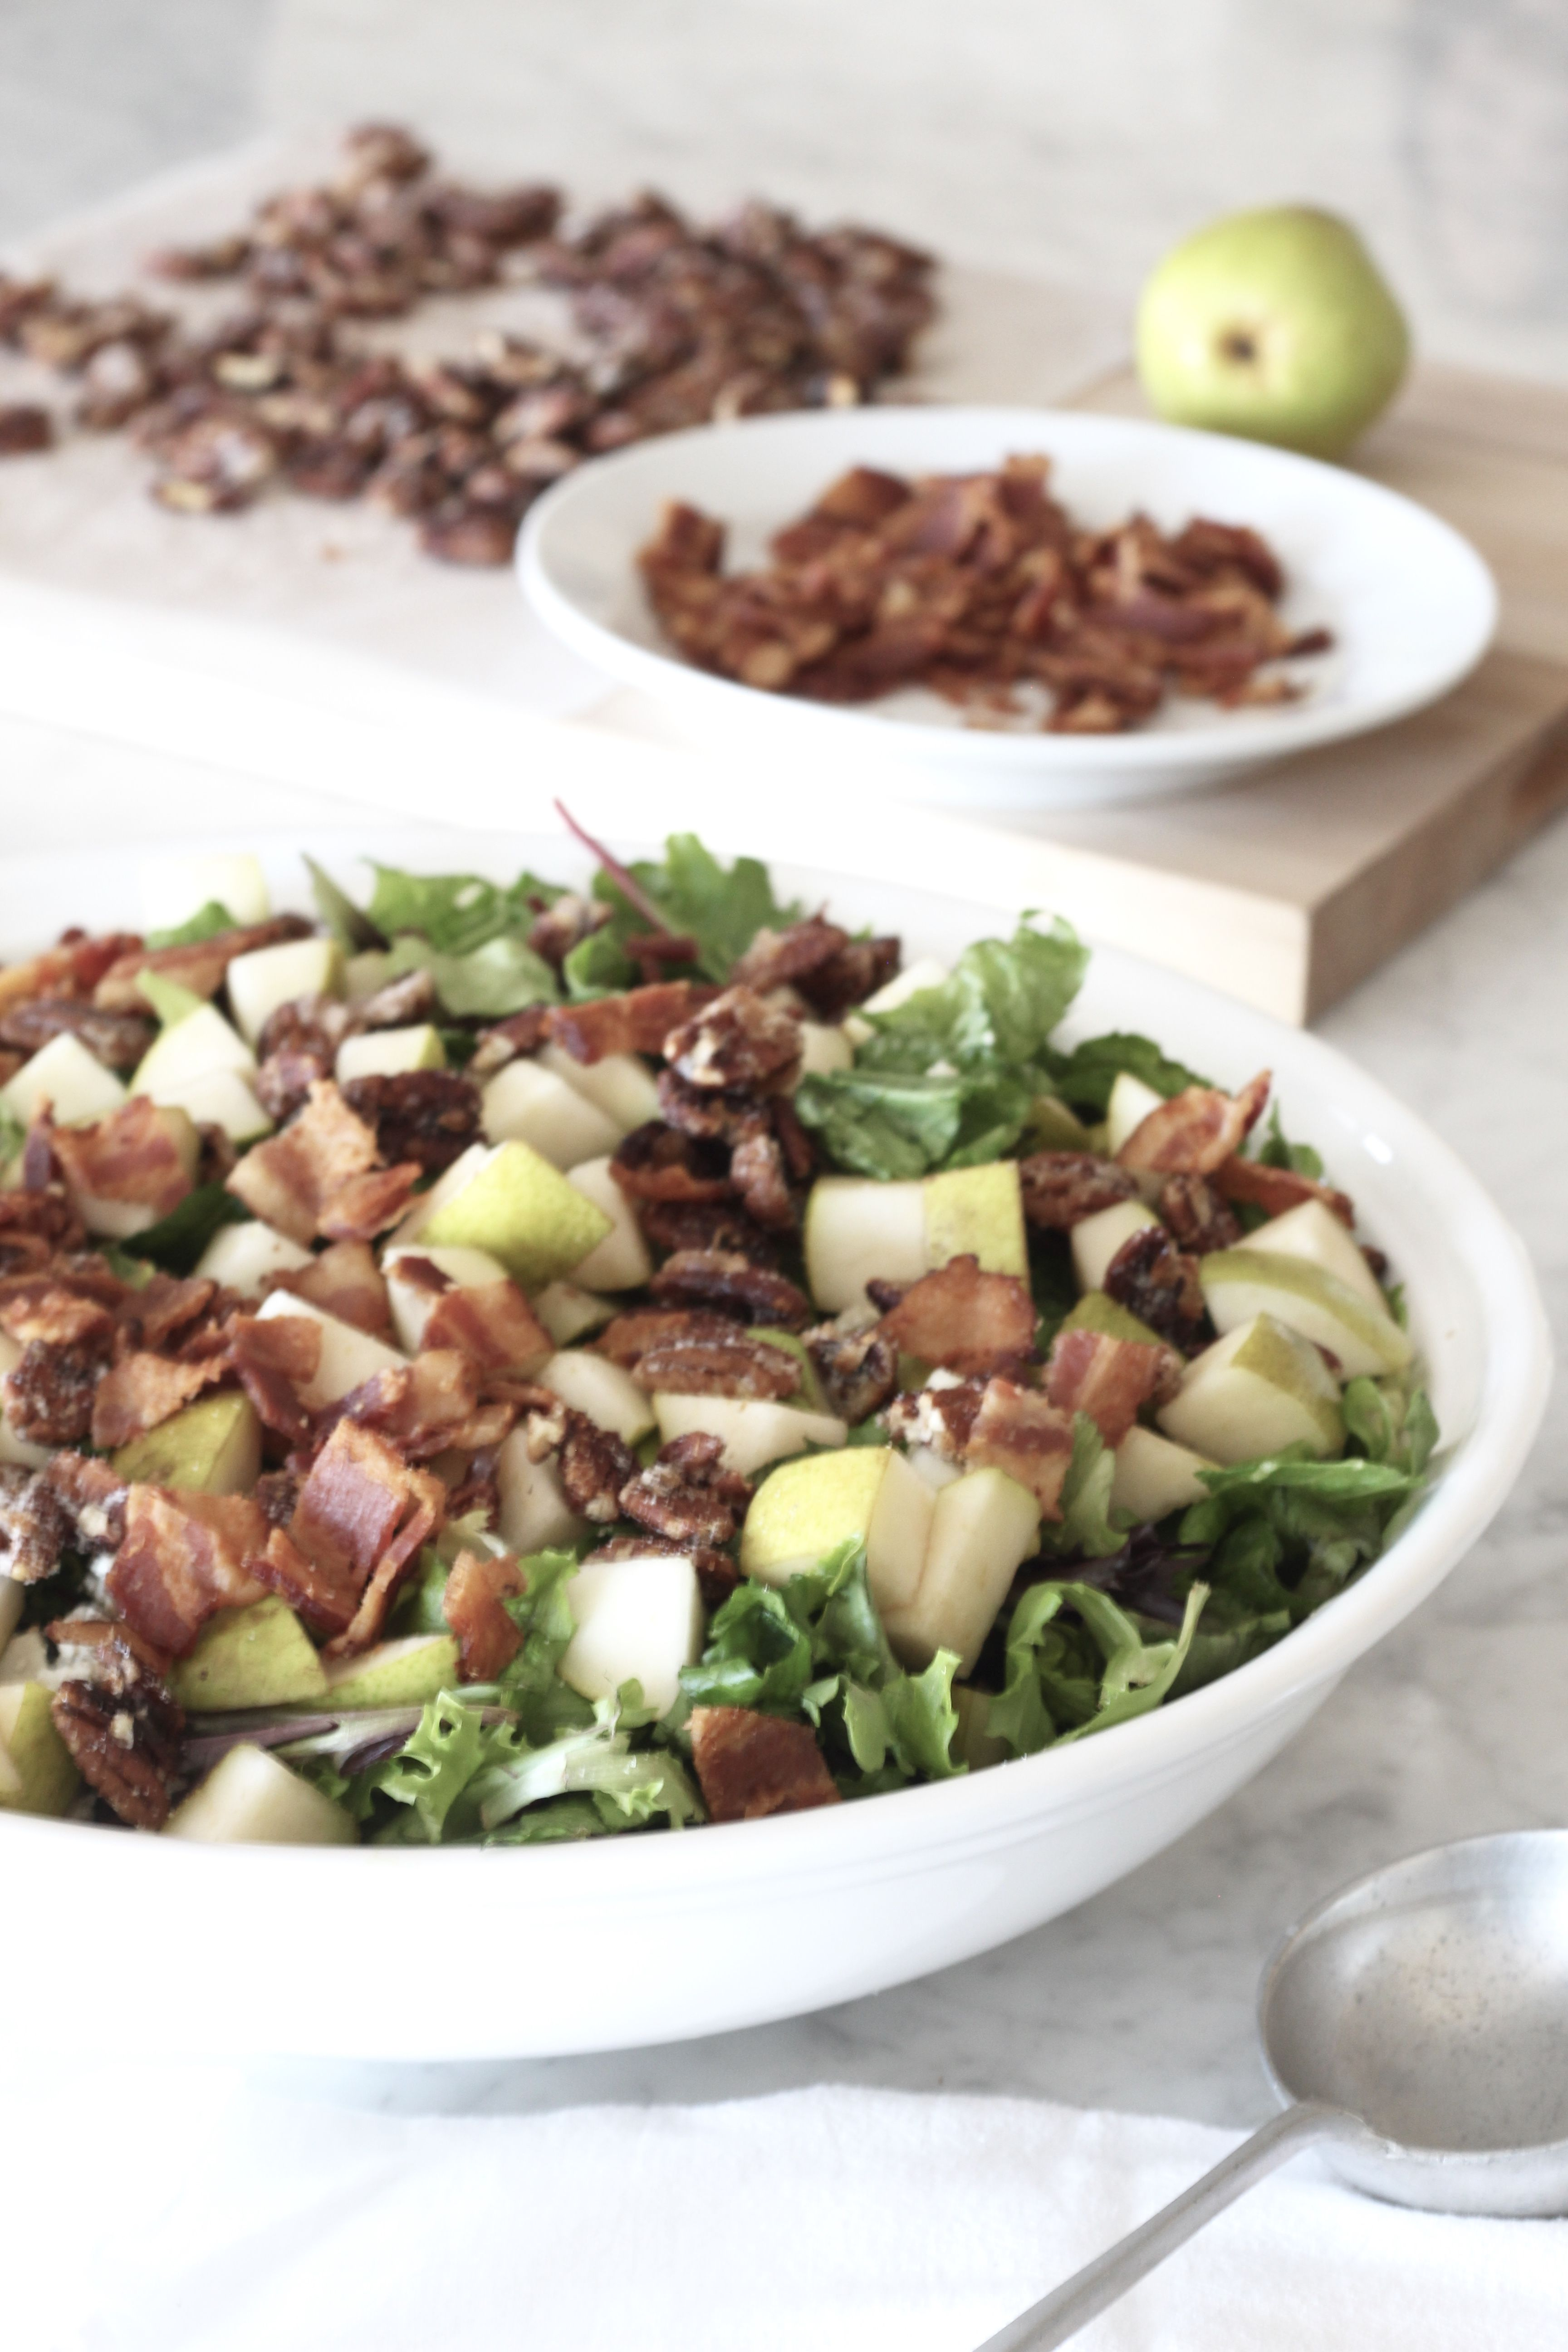 Pear And Pecan Salad With Sweet Red Wine Vinaigrette A Bountiful Kitchen Recipe Pecan Salad Red Wine Vinaigrette Sweet Red Wines [ 5184 x 3456 Pixel ]